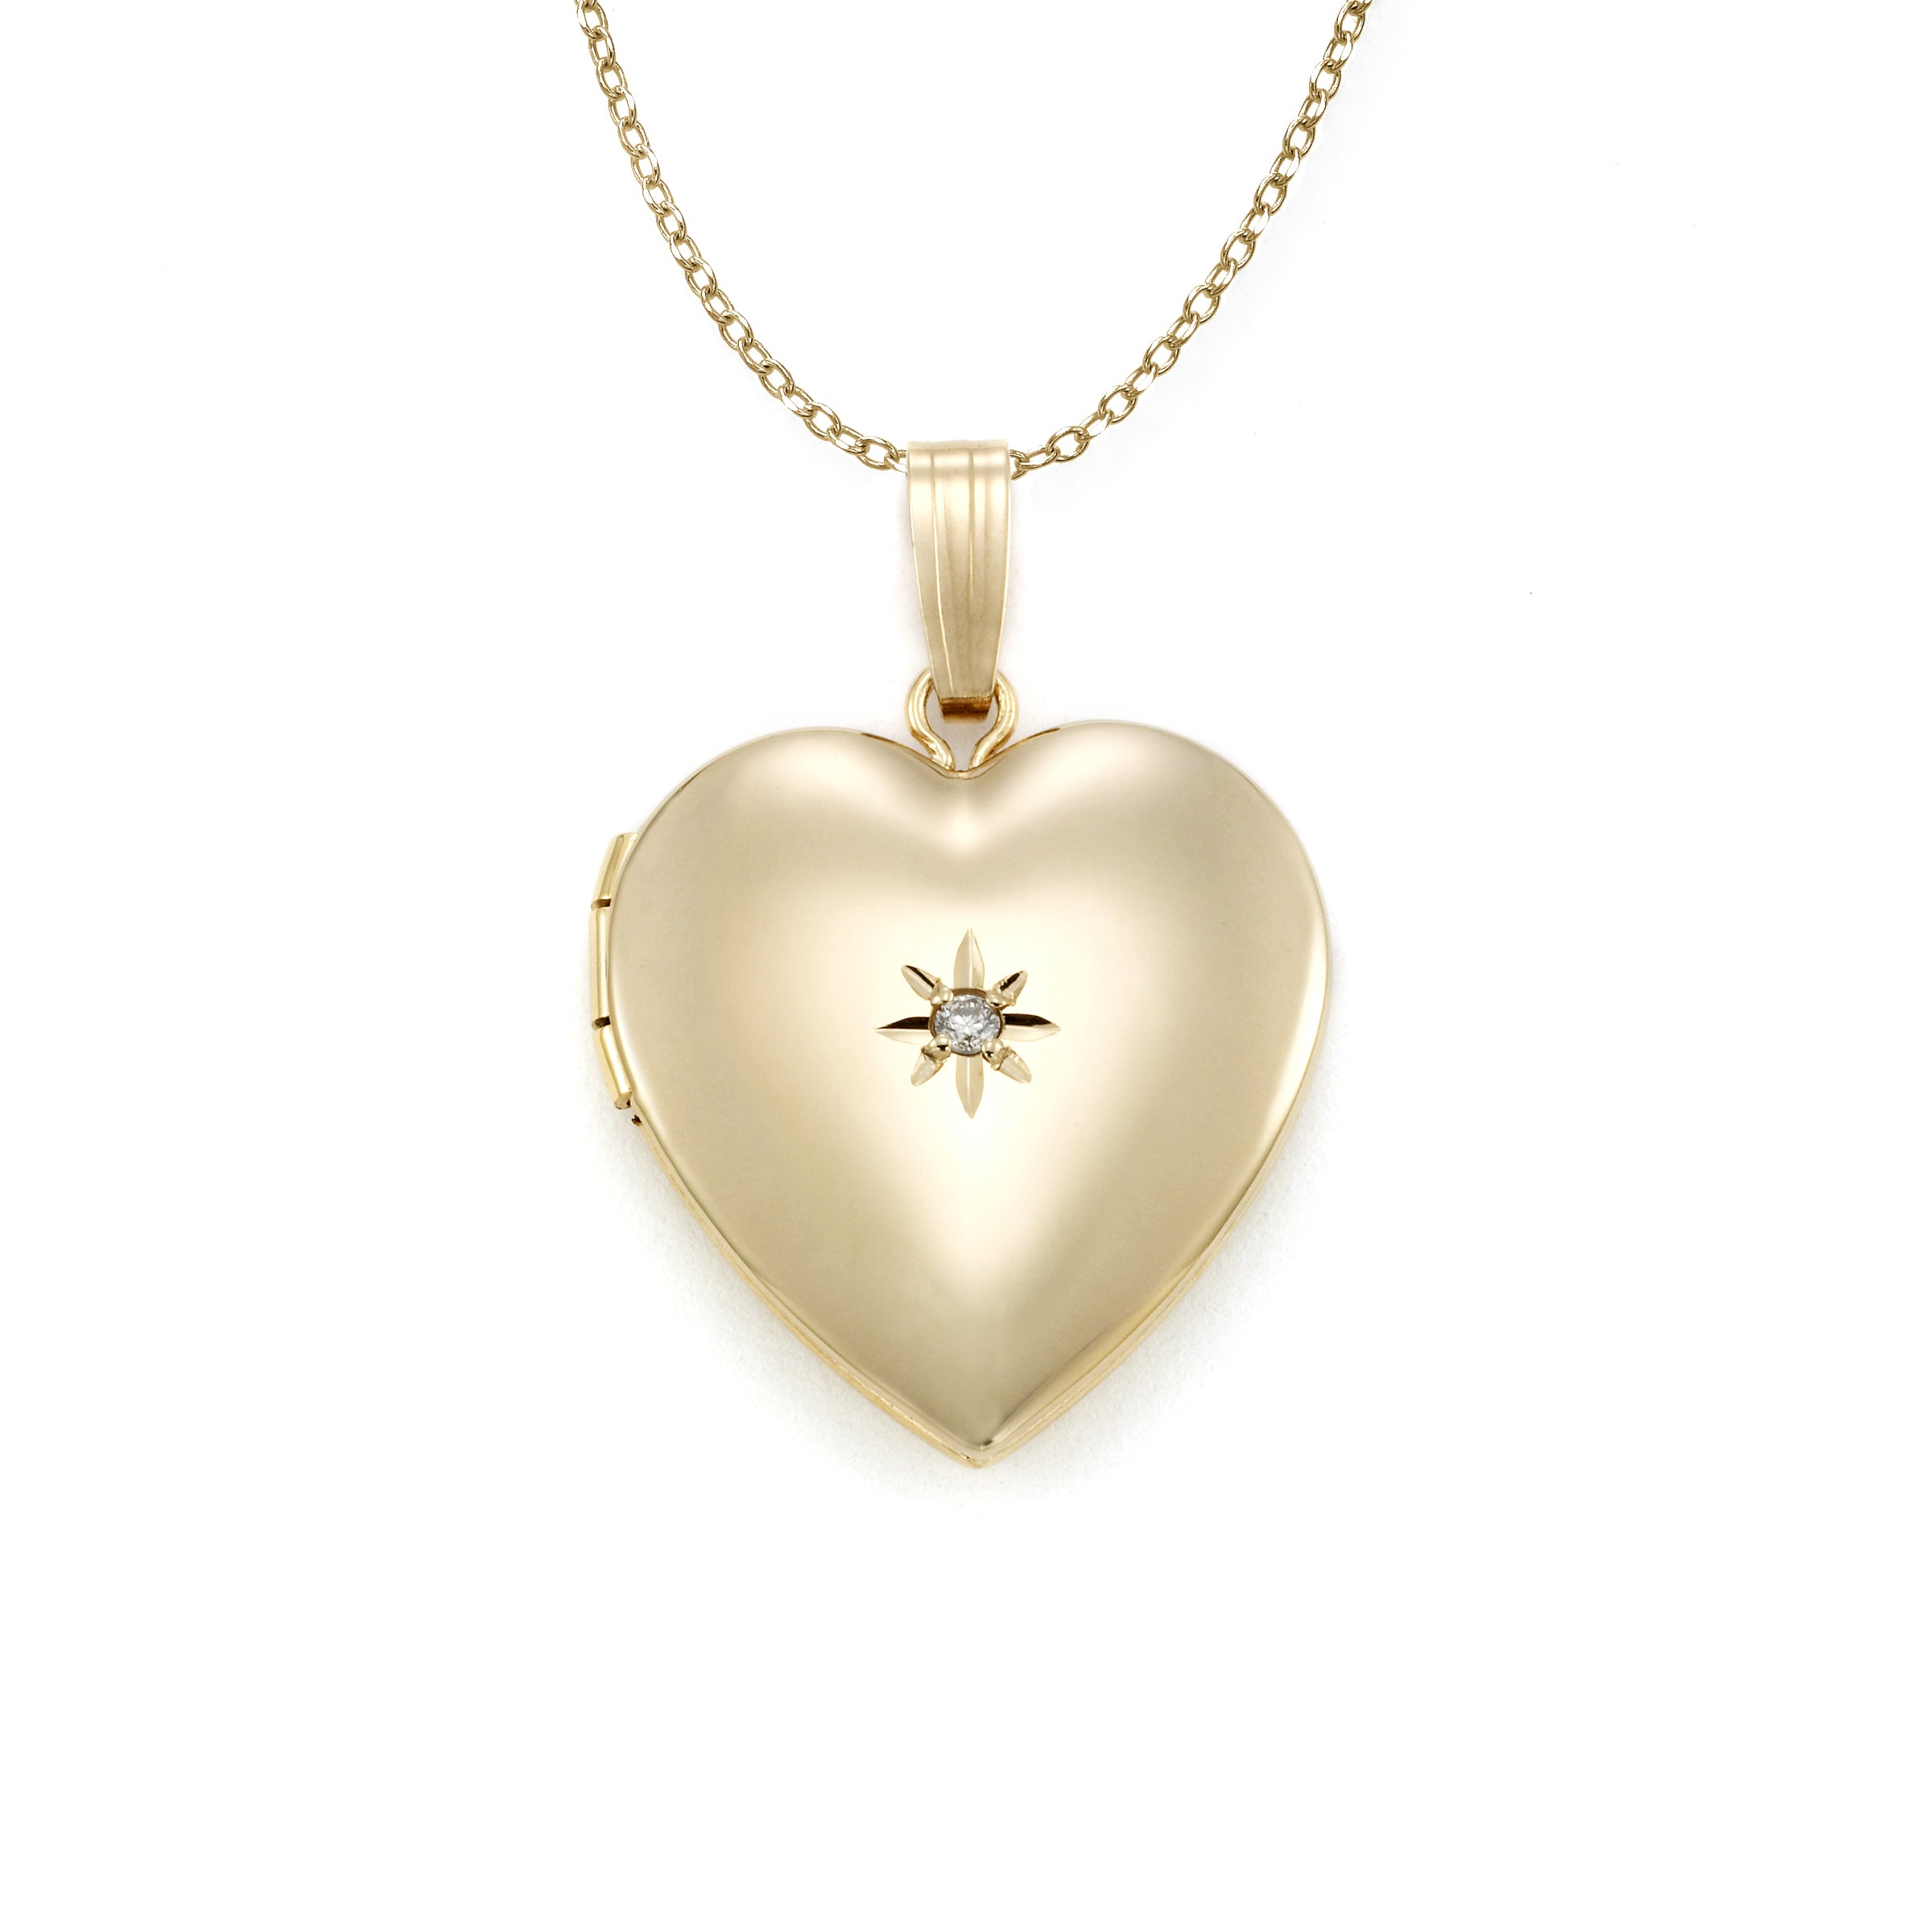 Heart Shaped Locket, Diamond Accent, 14 Karat Yellow Gold